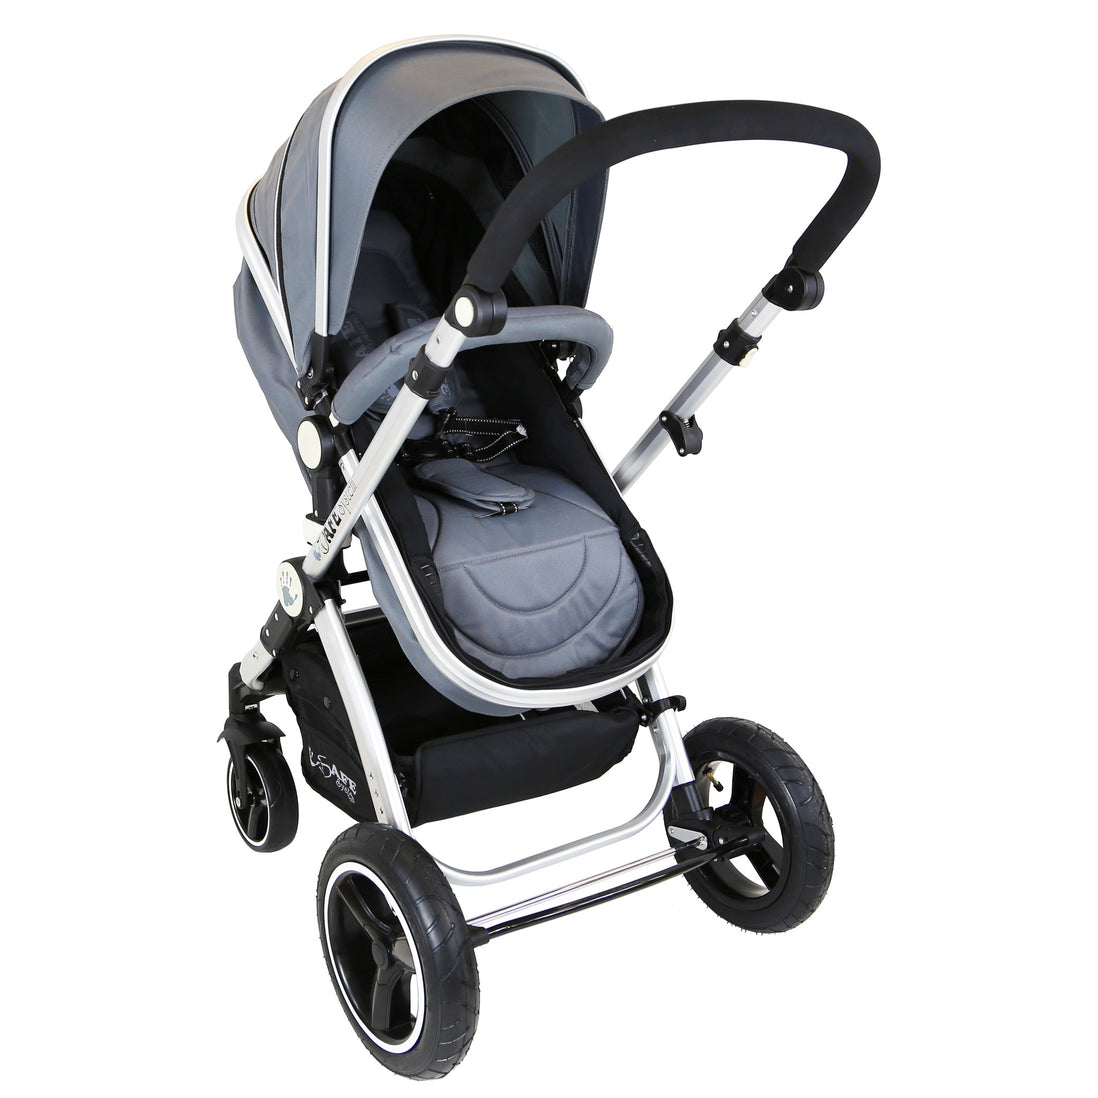 Carseat Footmuff i-Safe System RainCovers Footmuff Ocean Trio Travel System Pram /& Luxury Stroller 3 in 1 Complete With Car Seat